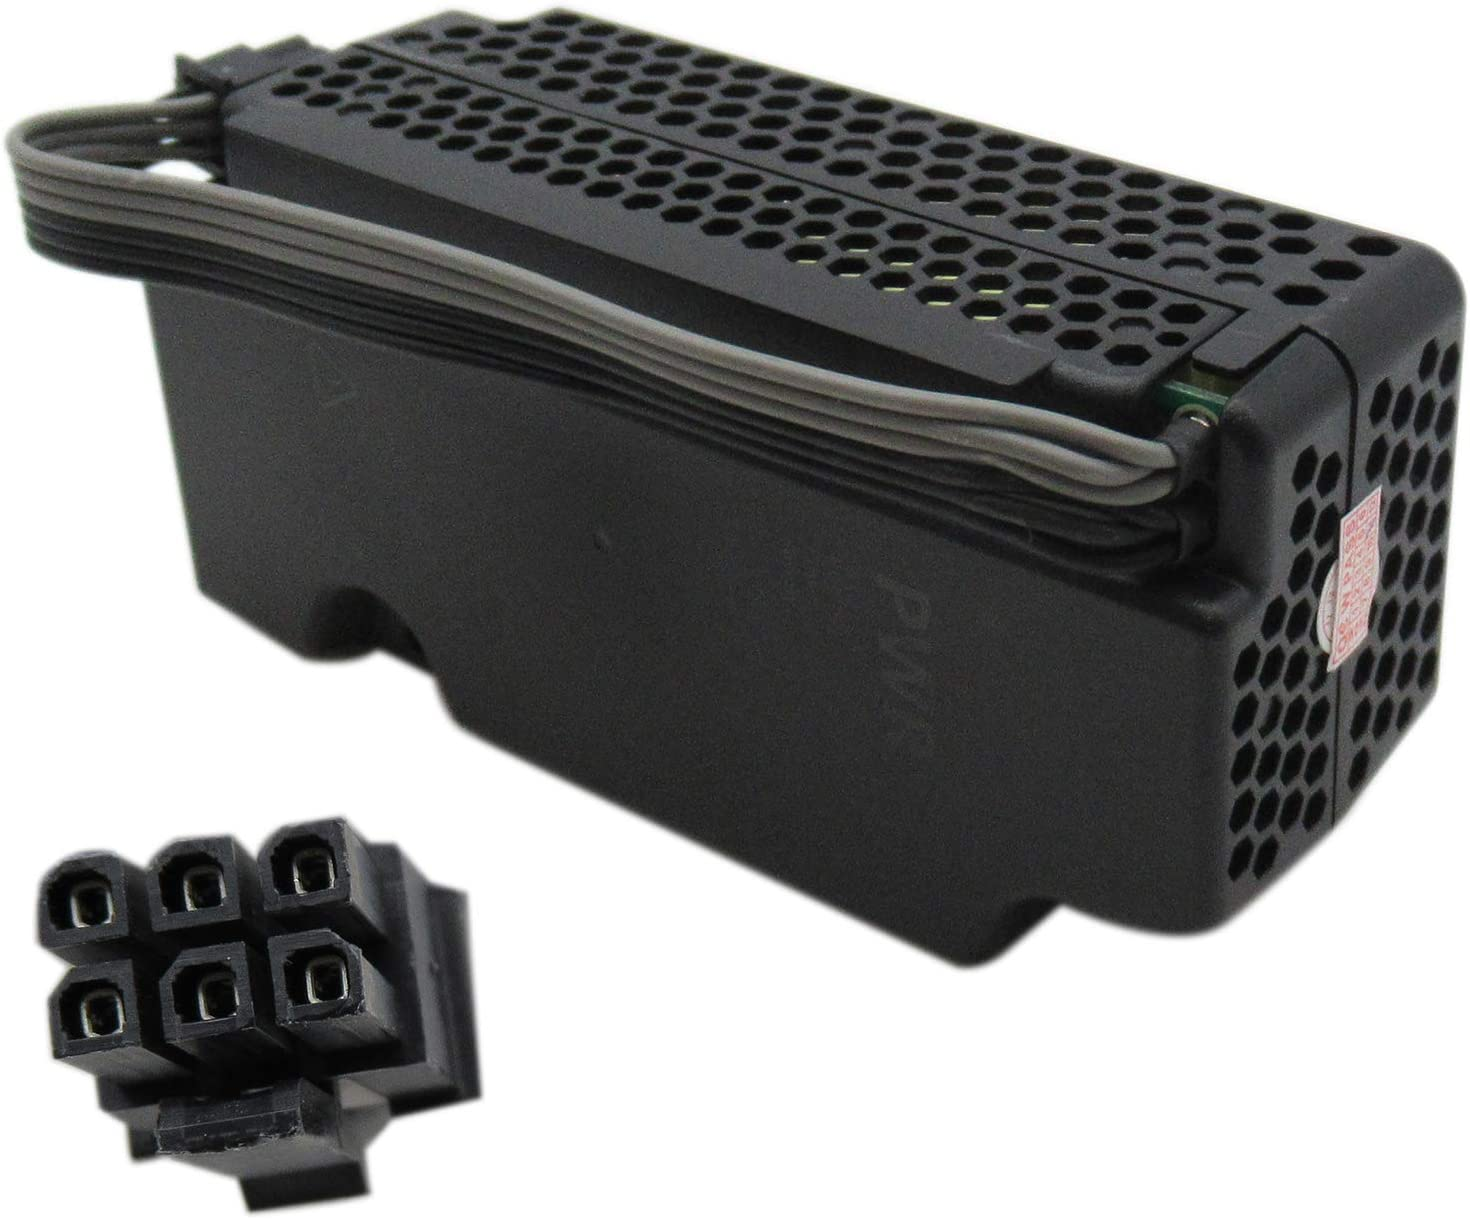 Gxcdizx Internal Power Supply Tucson Mall for Xbox Slim AC Ones Denver Mall Adapter Bric